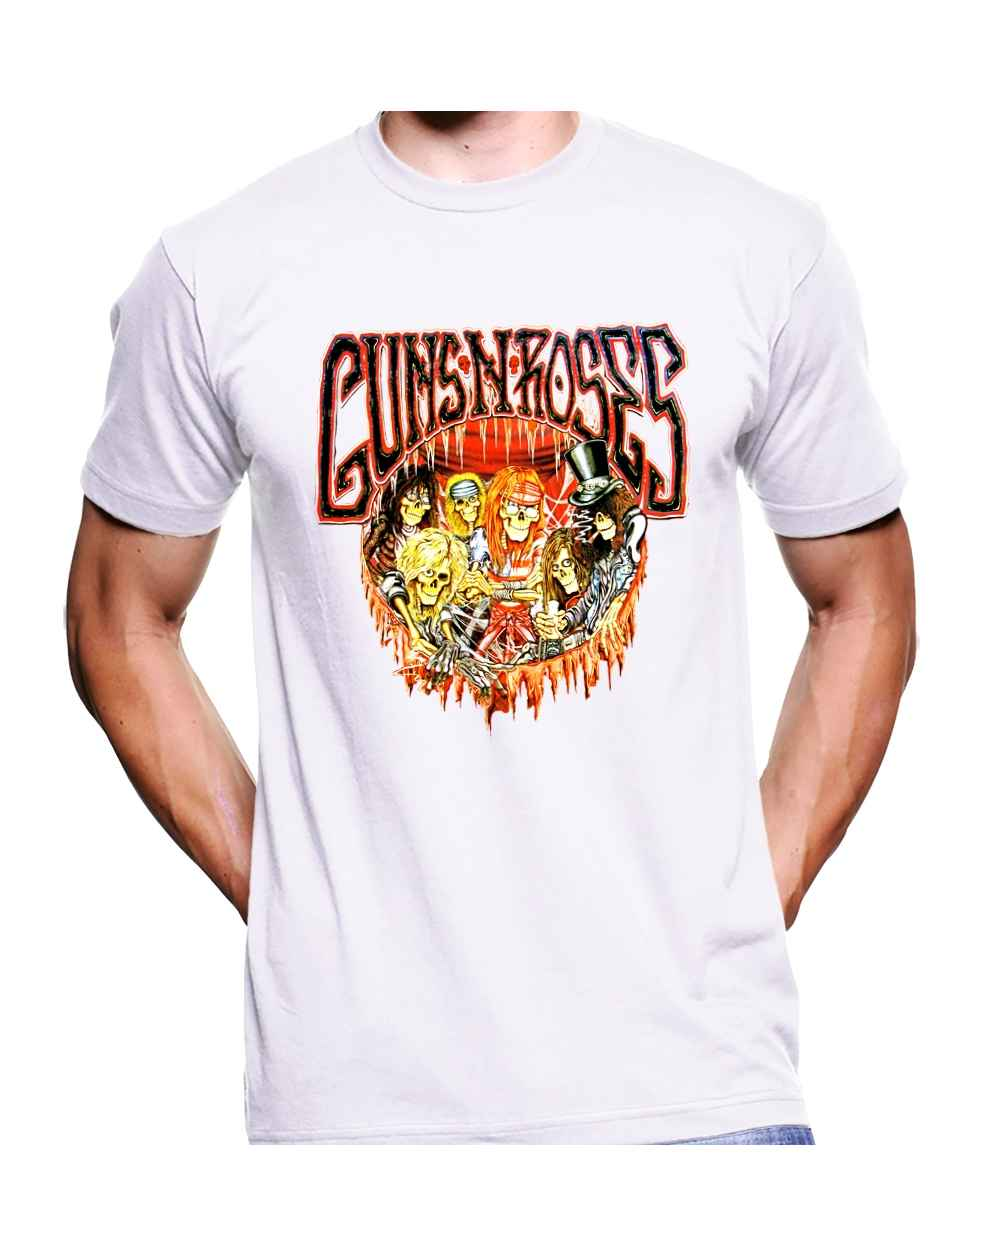 Camiseta Estampada Hombre Guns And Roses 09